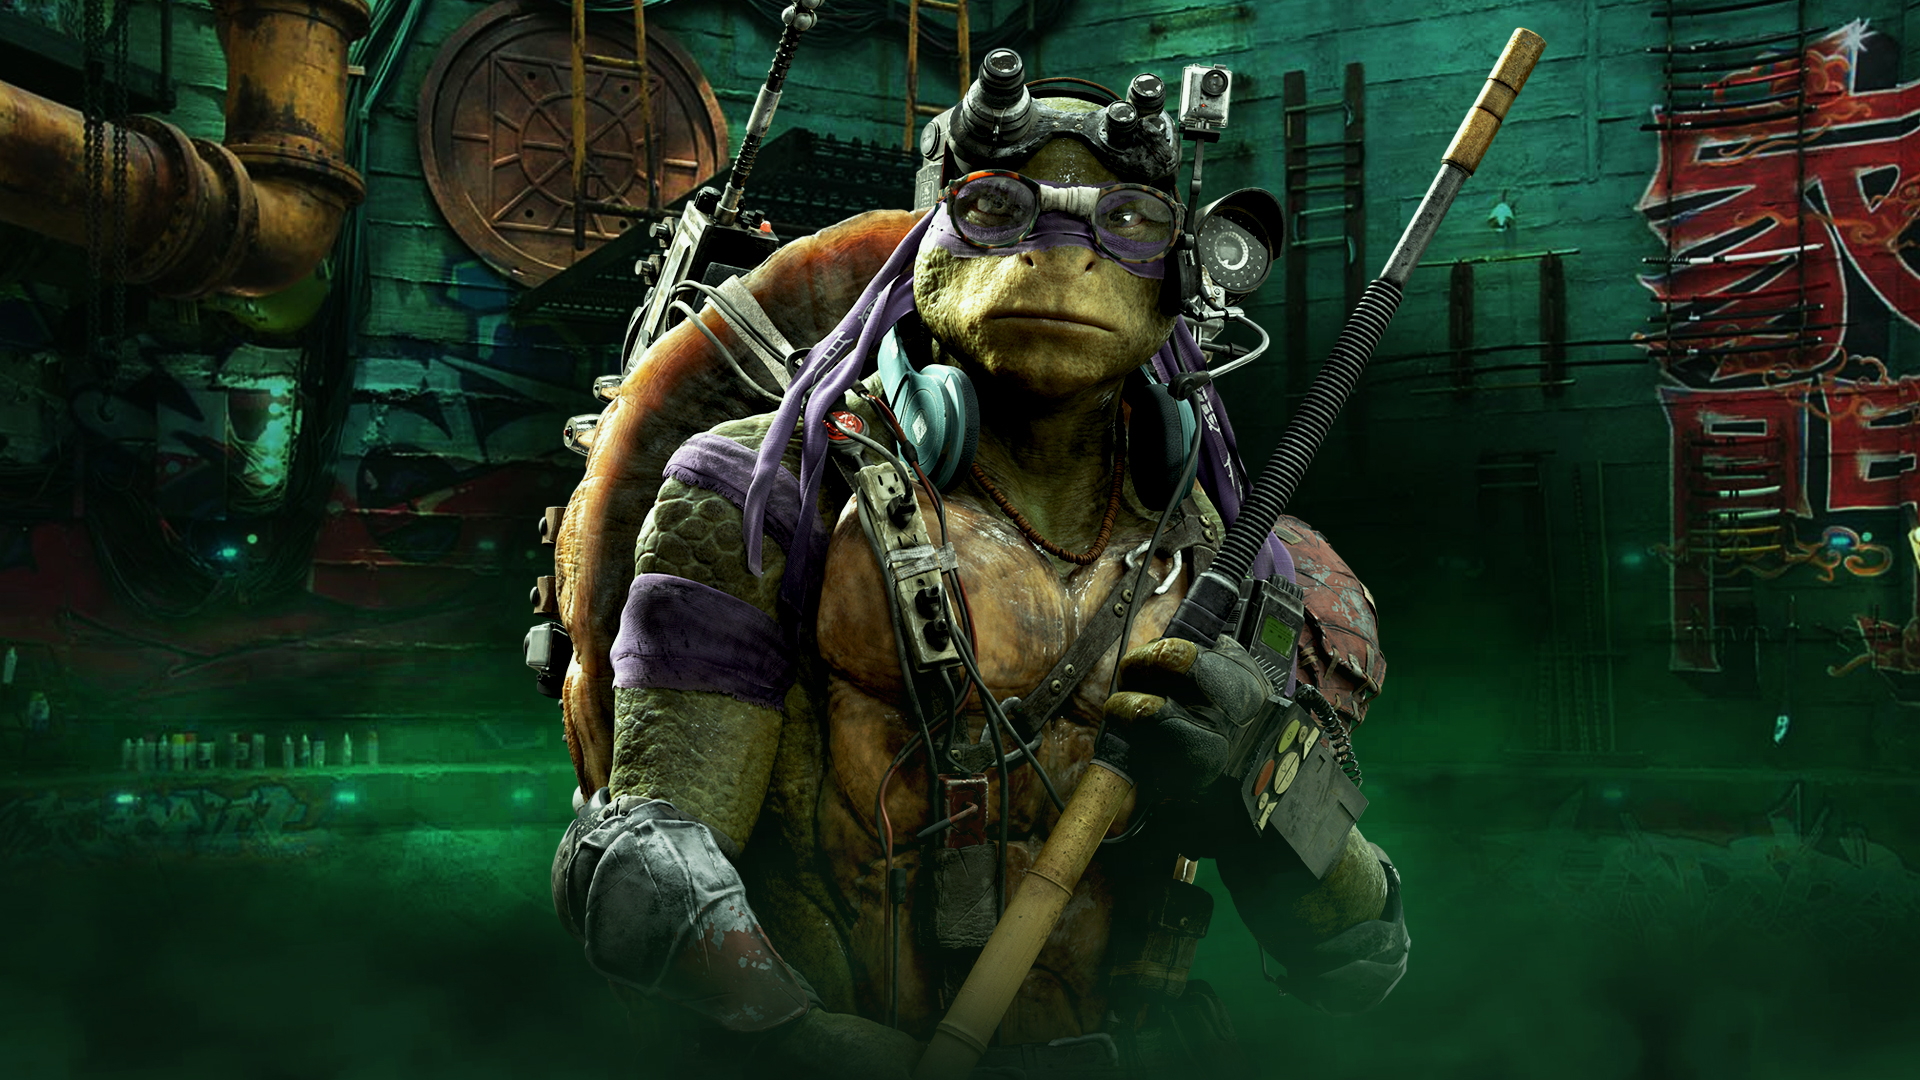 Tmnt 2014 wallpaper hd